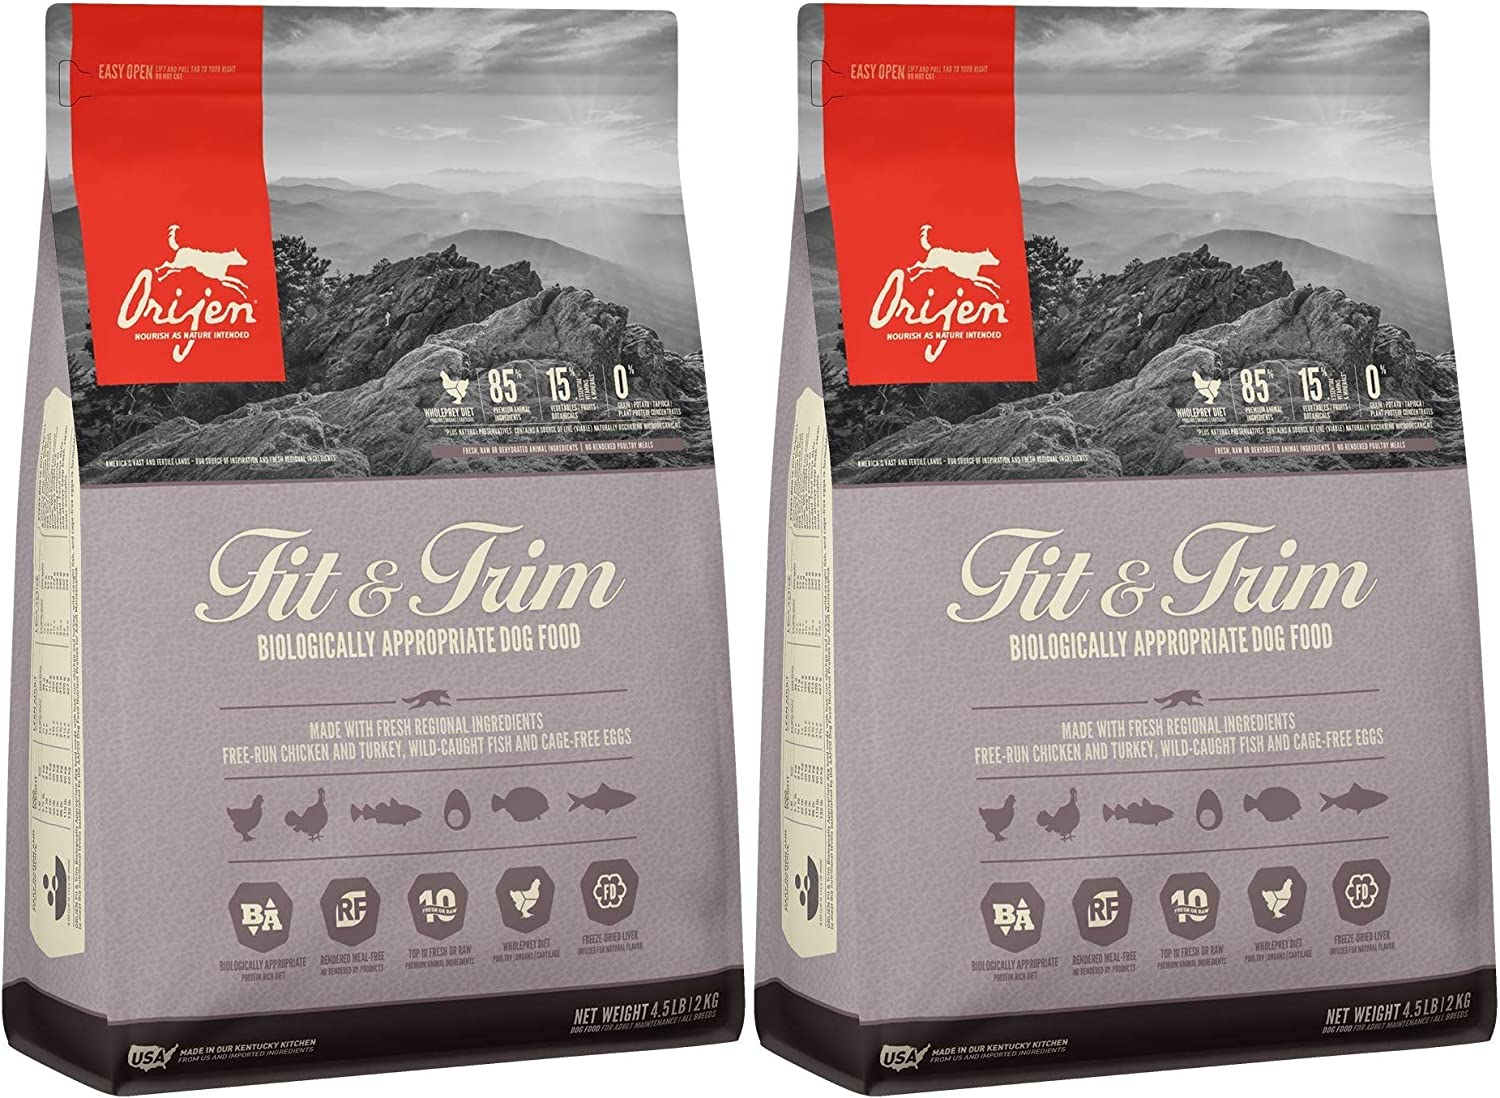 Orijen 2 Pack of Fit & Trim Dog Food, 4.5 Pounds Each, Grain-Free Kibble Made in The USA